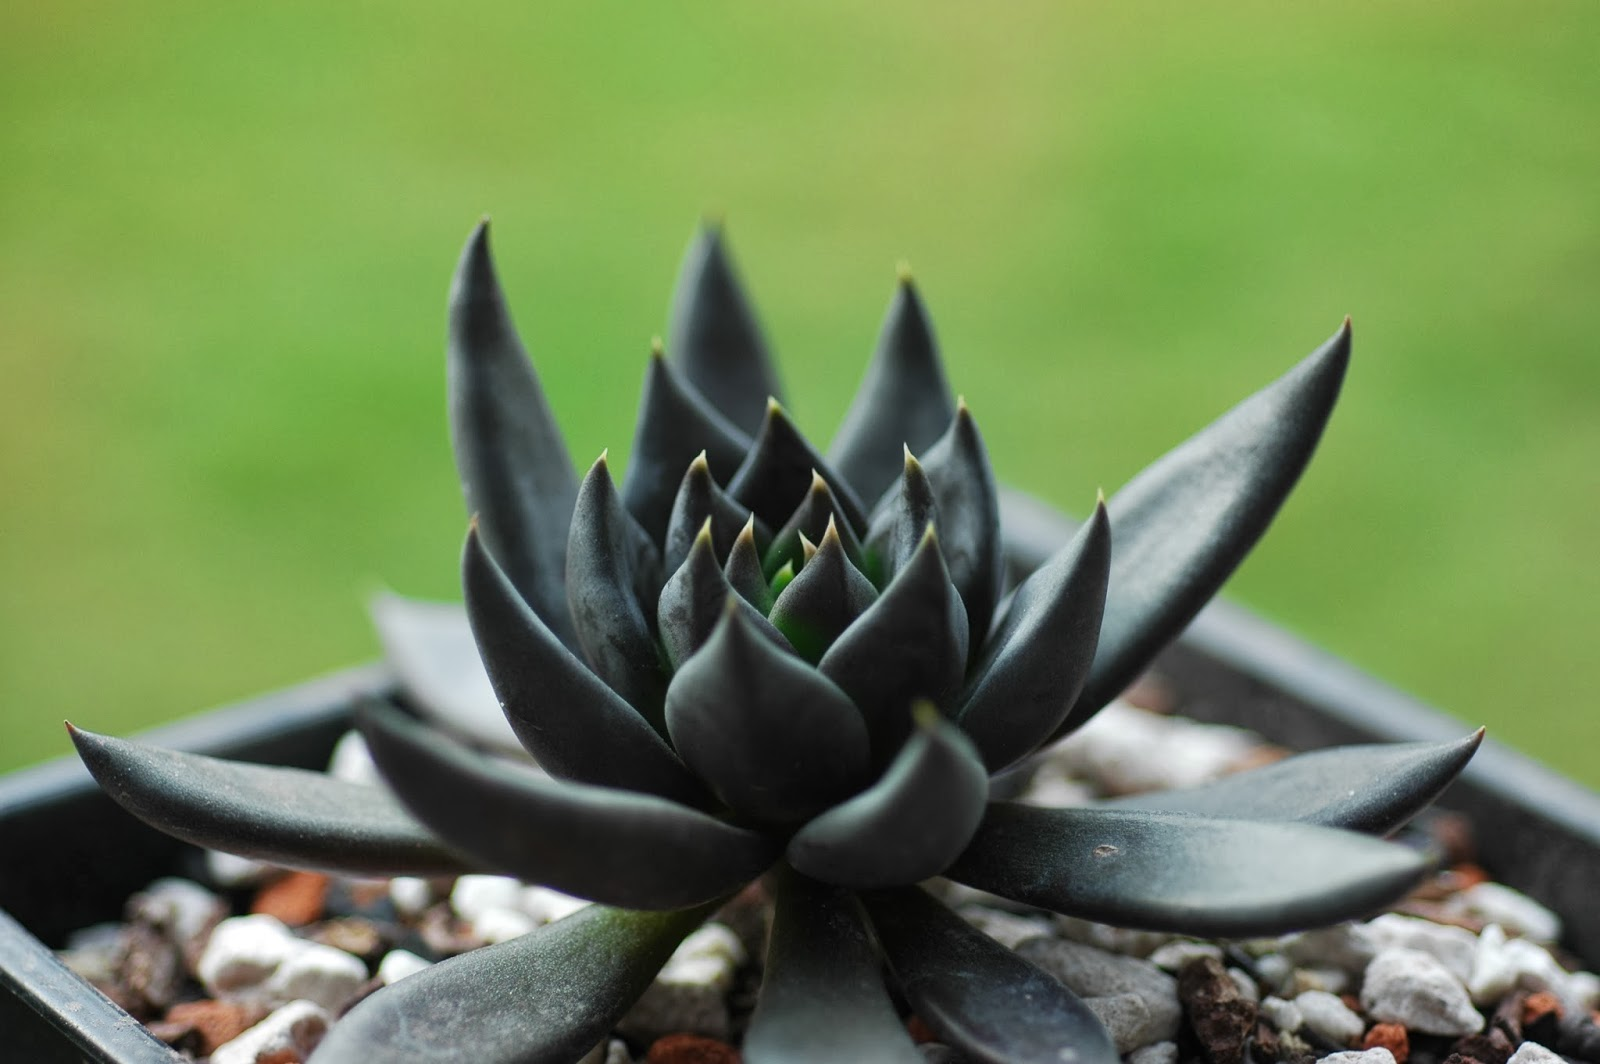 u591a u5bf6 u5712 the dobo garden   u9ed1 u6b66 u58eb echeveria cv  black knight